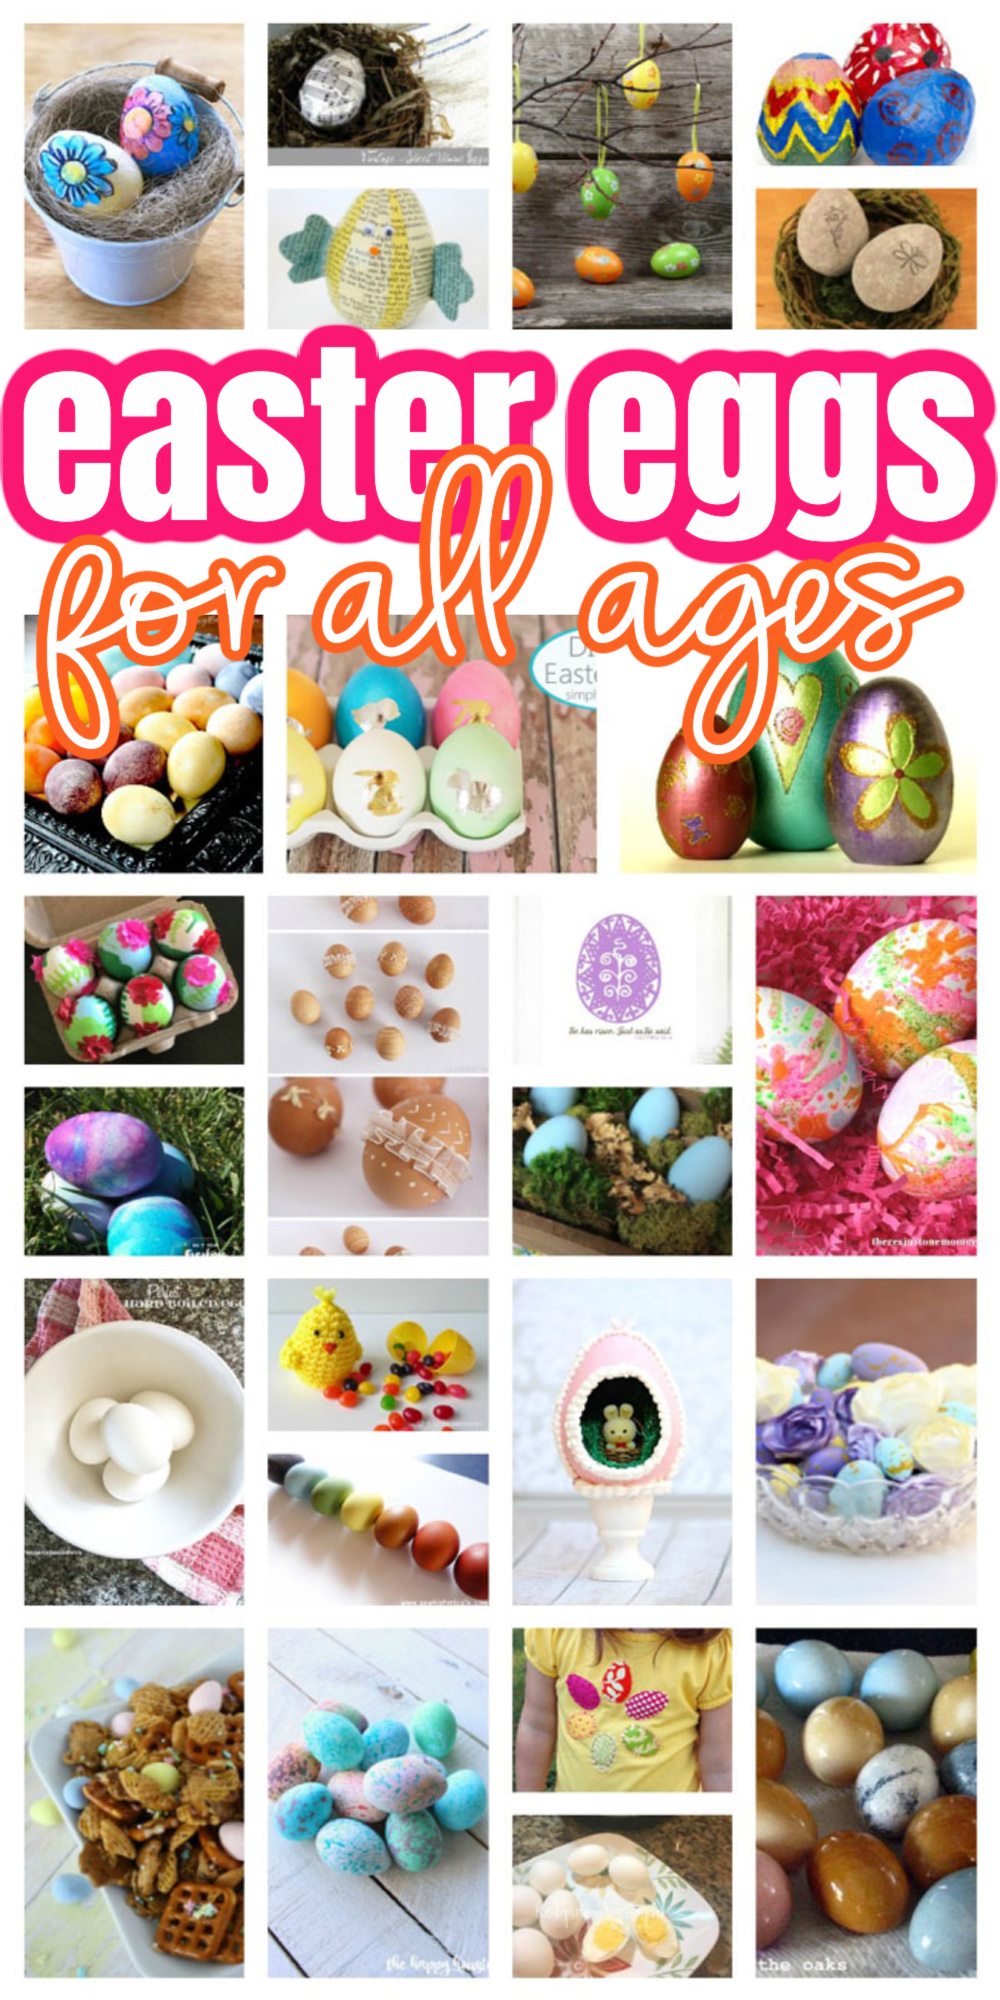 best Easter egg decorating tutorials perfect for kids craft time or adult crafting